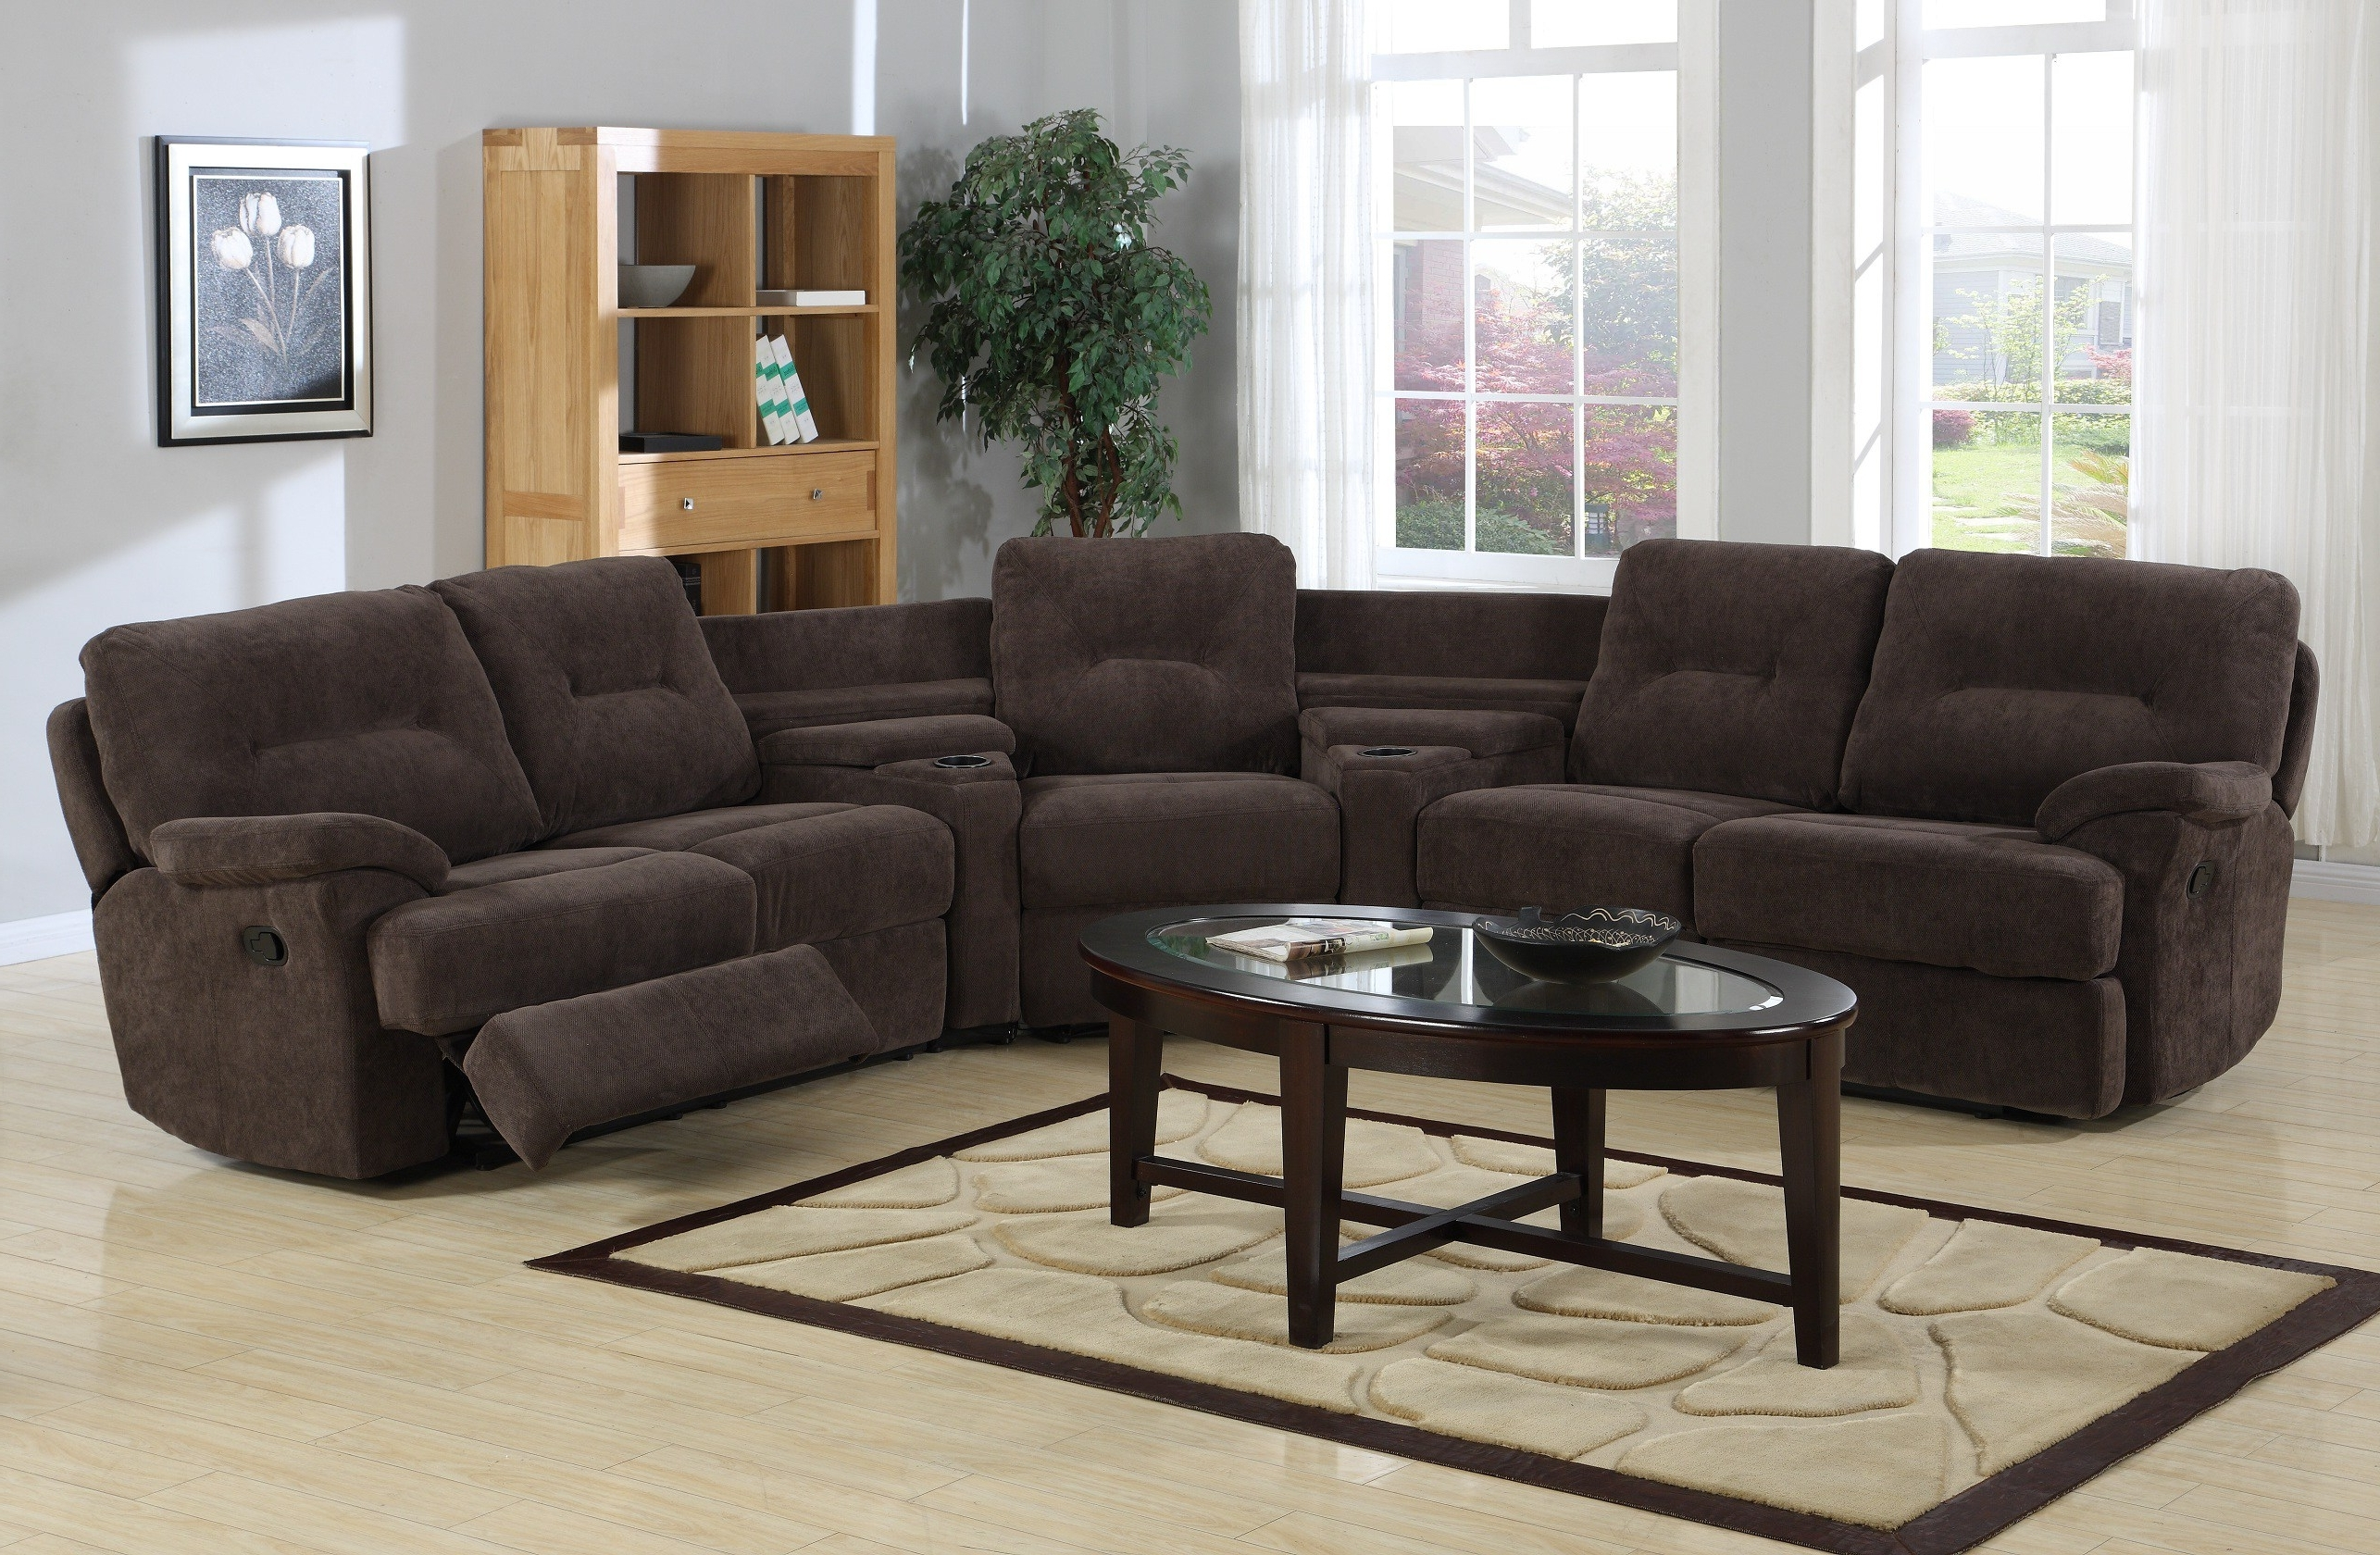 Widely Used Portland Oregon Sectional Sofas With Regard To Sectional Sofas Portland Oregon (View 20 of 20)